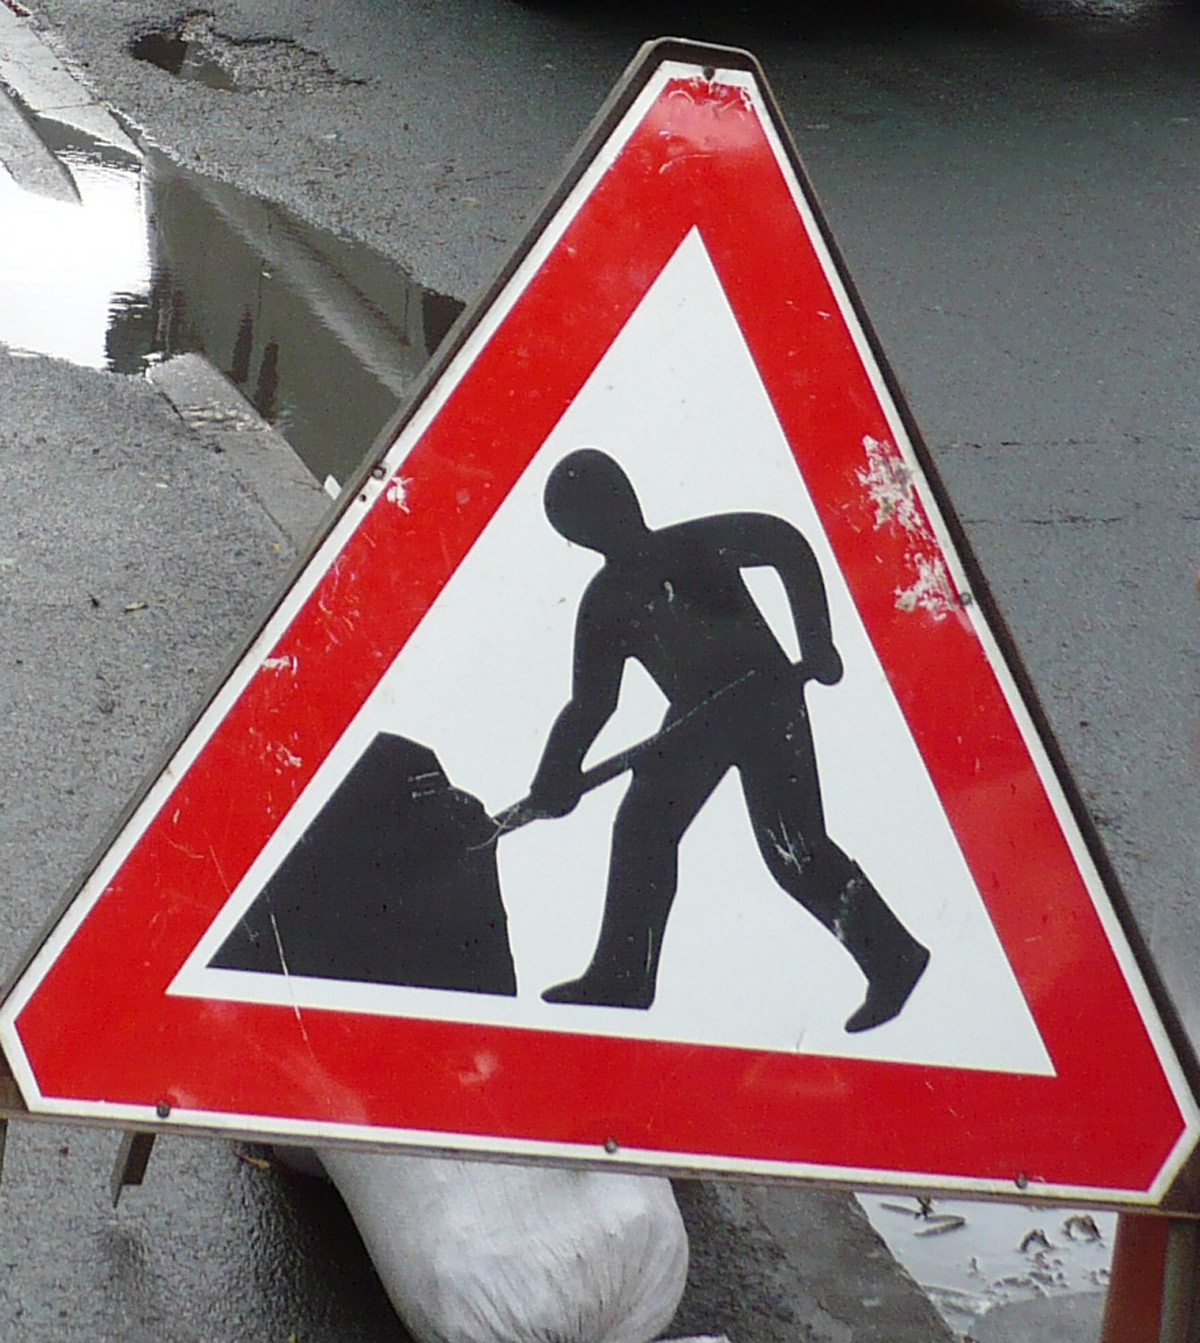 London Road resurfacing 'to be completed by Thursday'